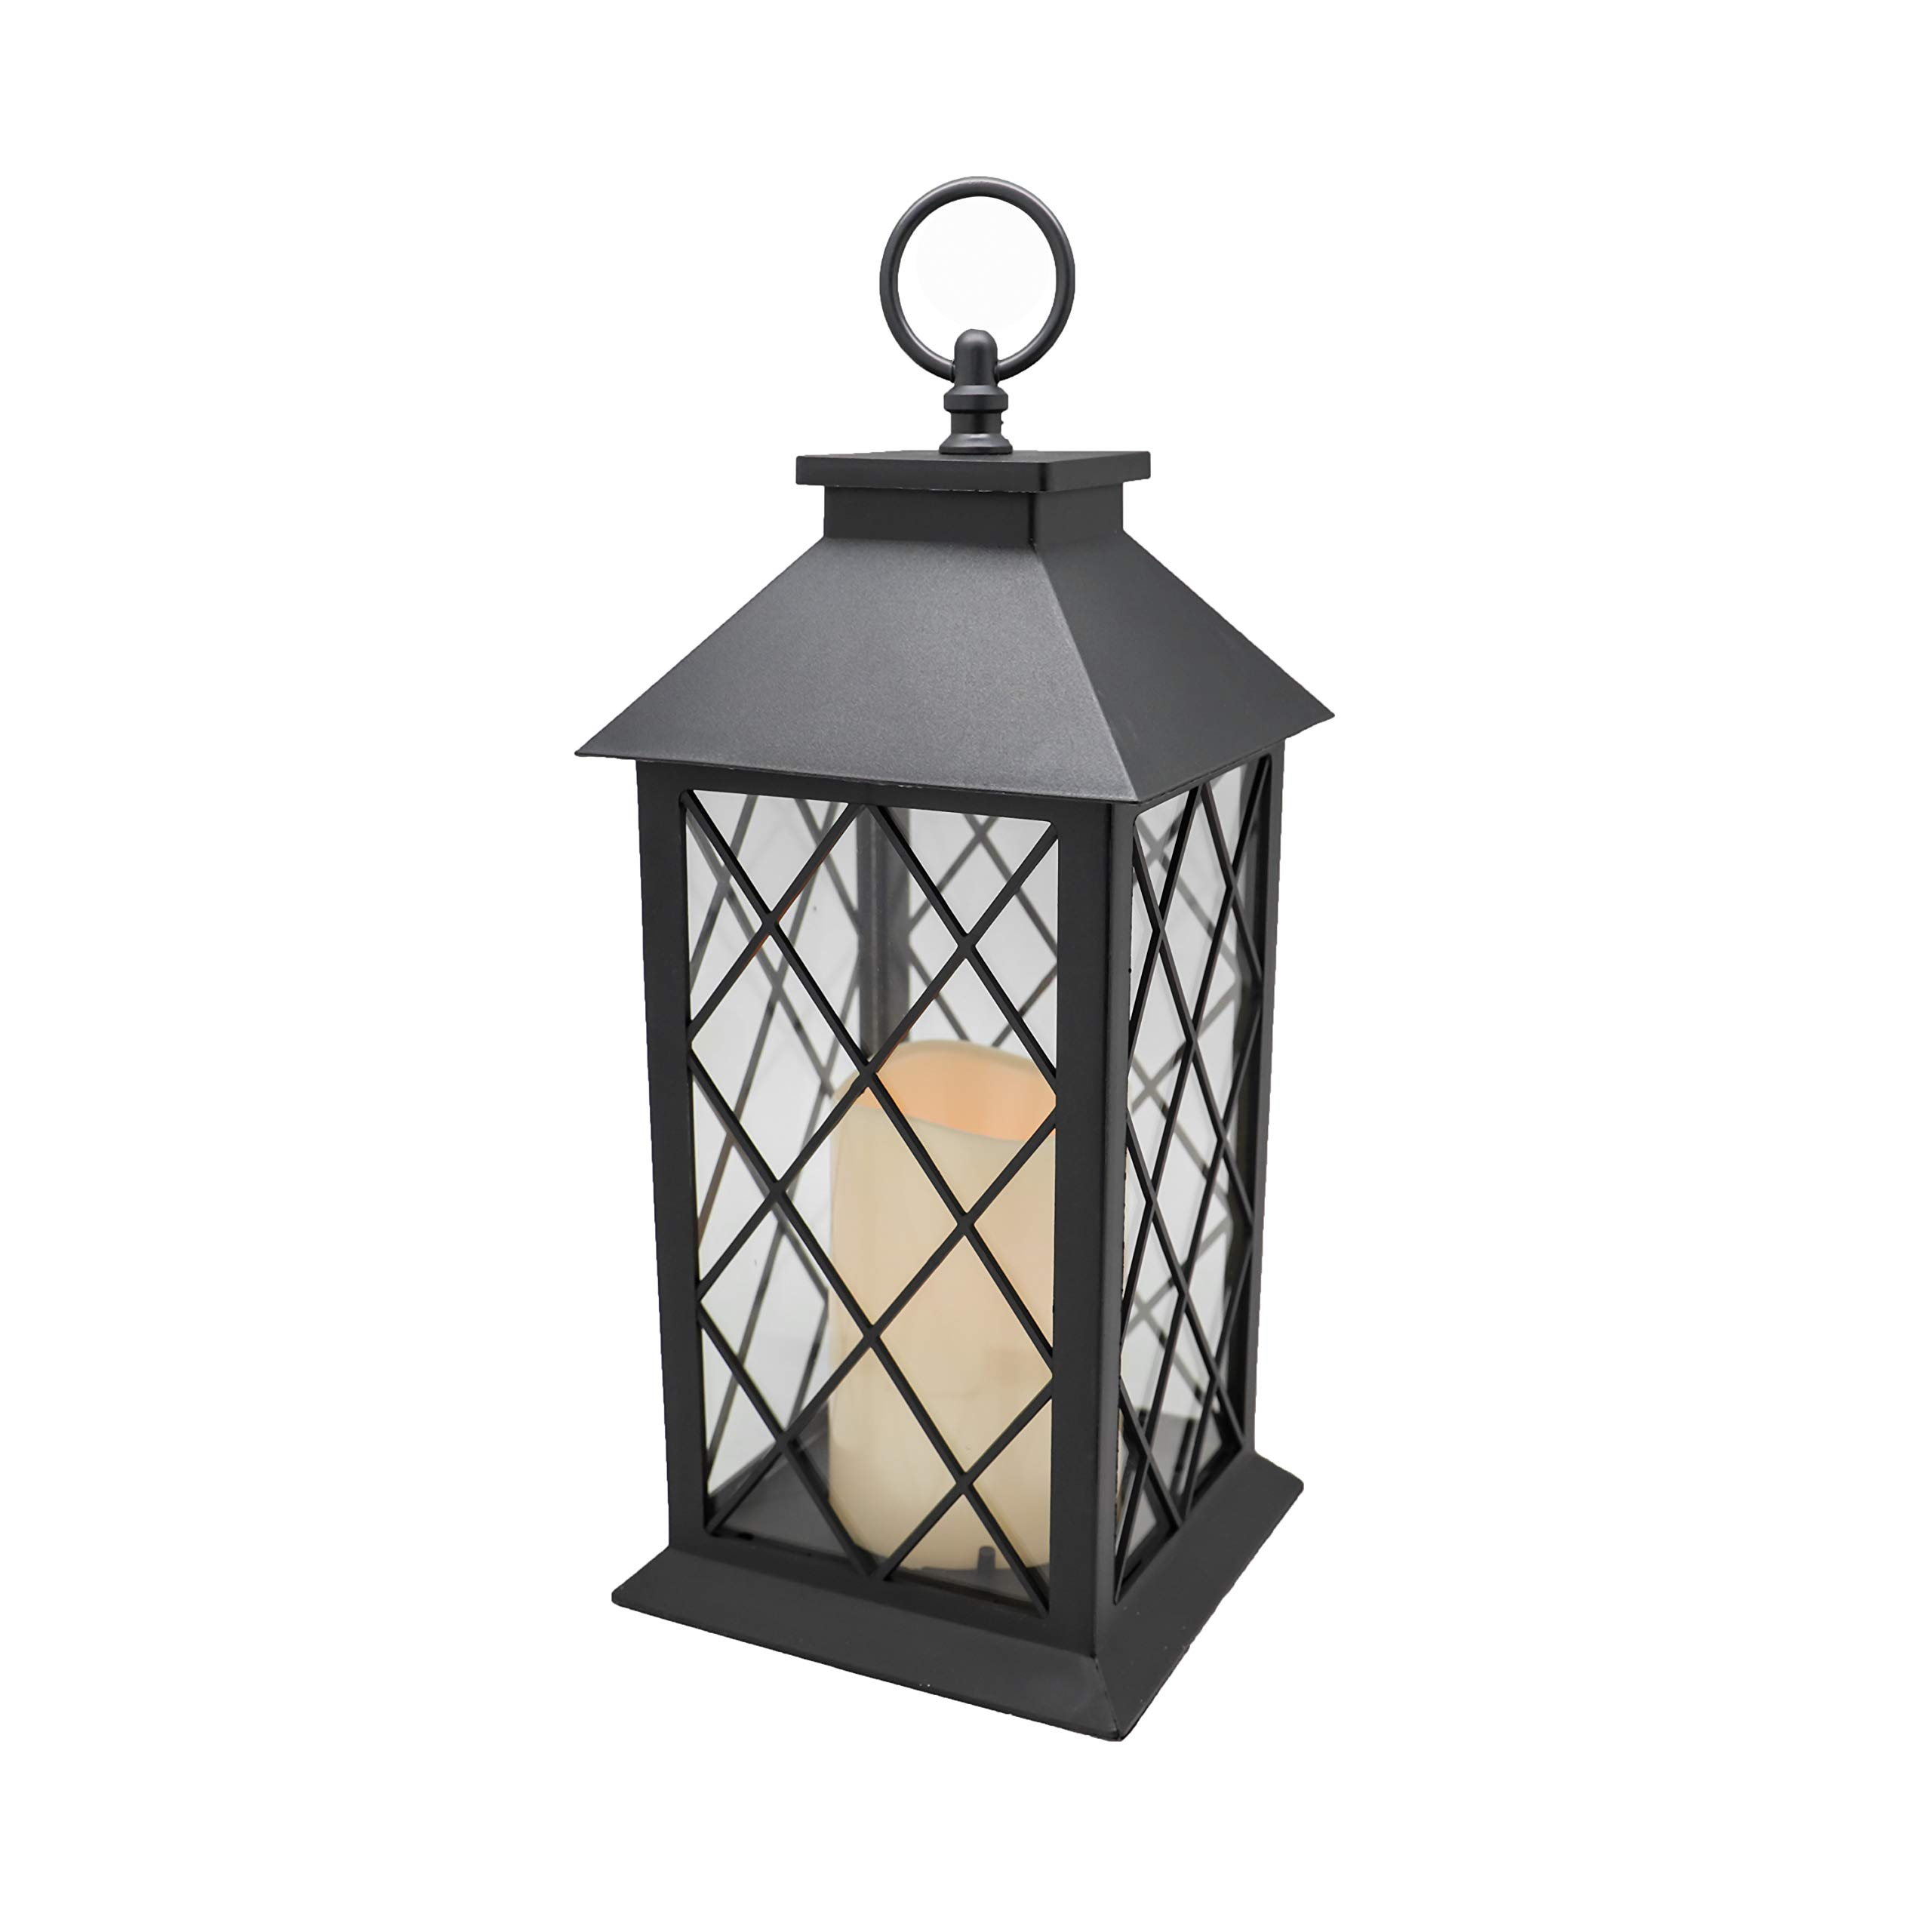 YAKii 13'' Decorative Candle Lantern with LED Flameless Candle and Timer, Plastic LED Candle & Holder, Indoor & Outdoor Hanging Lights(Black)